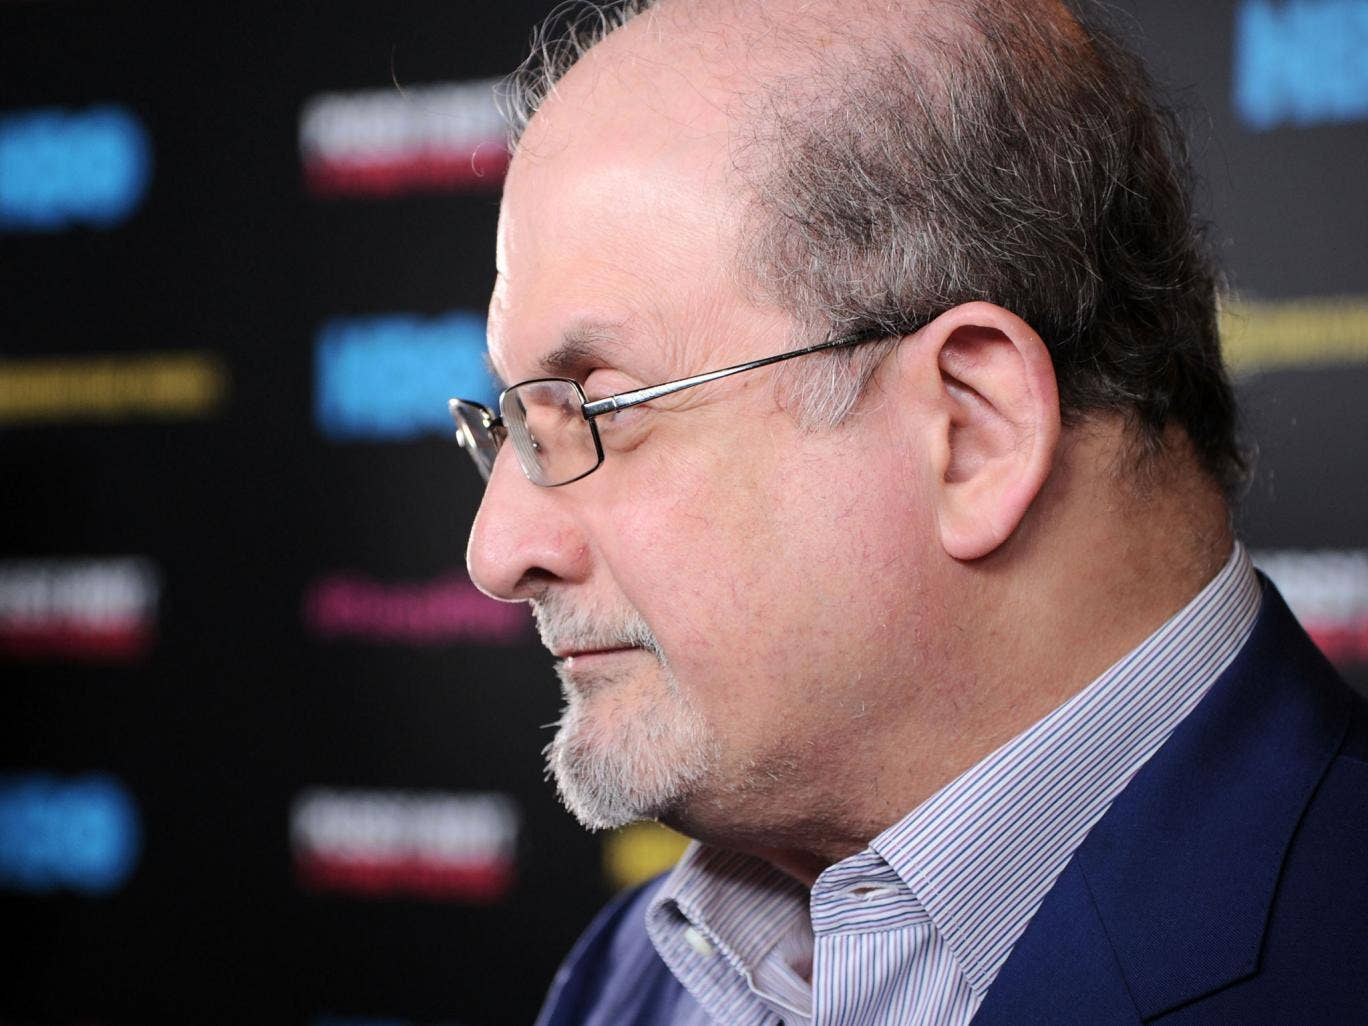 Salman Rushdie: 'If you don't want to read a book, don't read it'